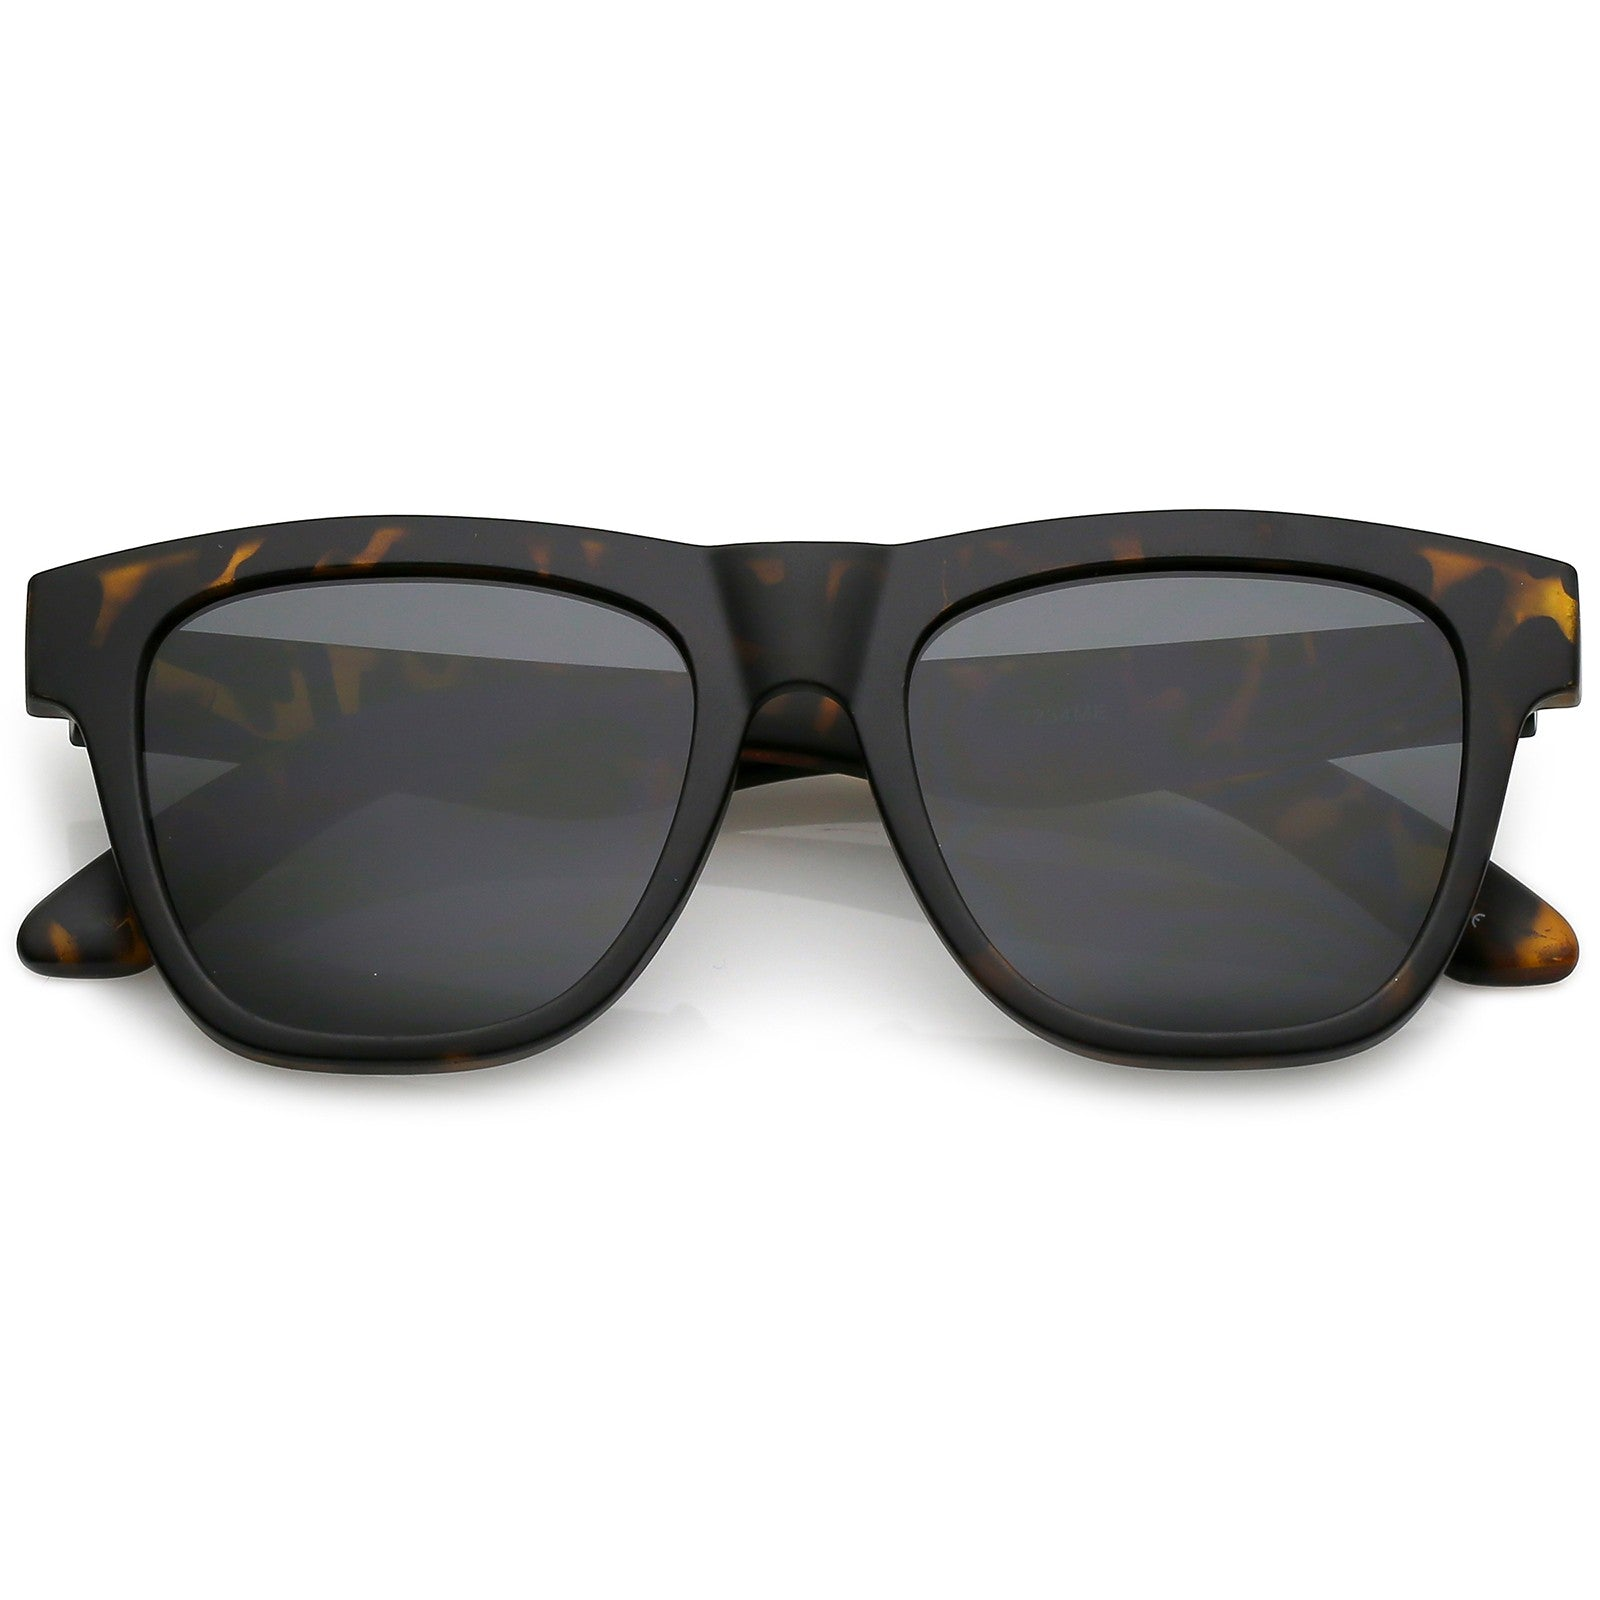 Classic Horn Rimmed Sunglasses With Thick Arms